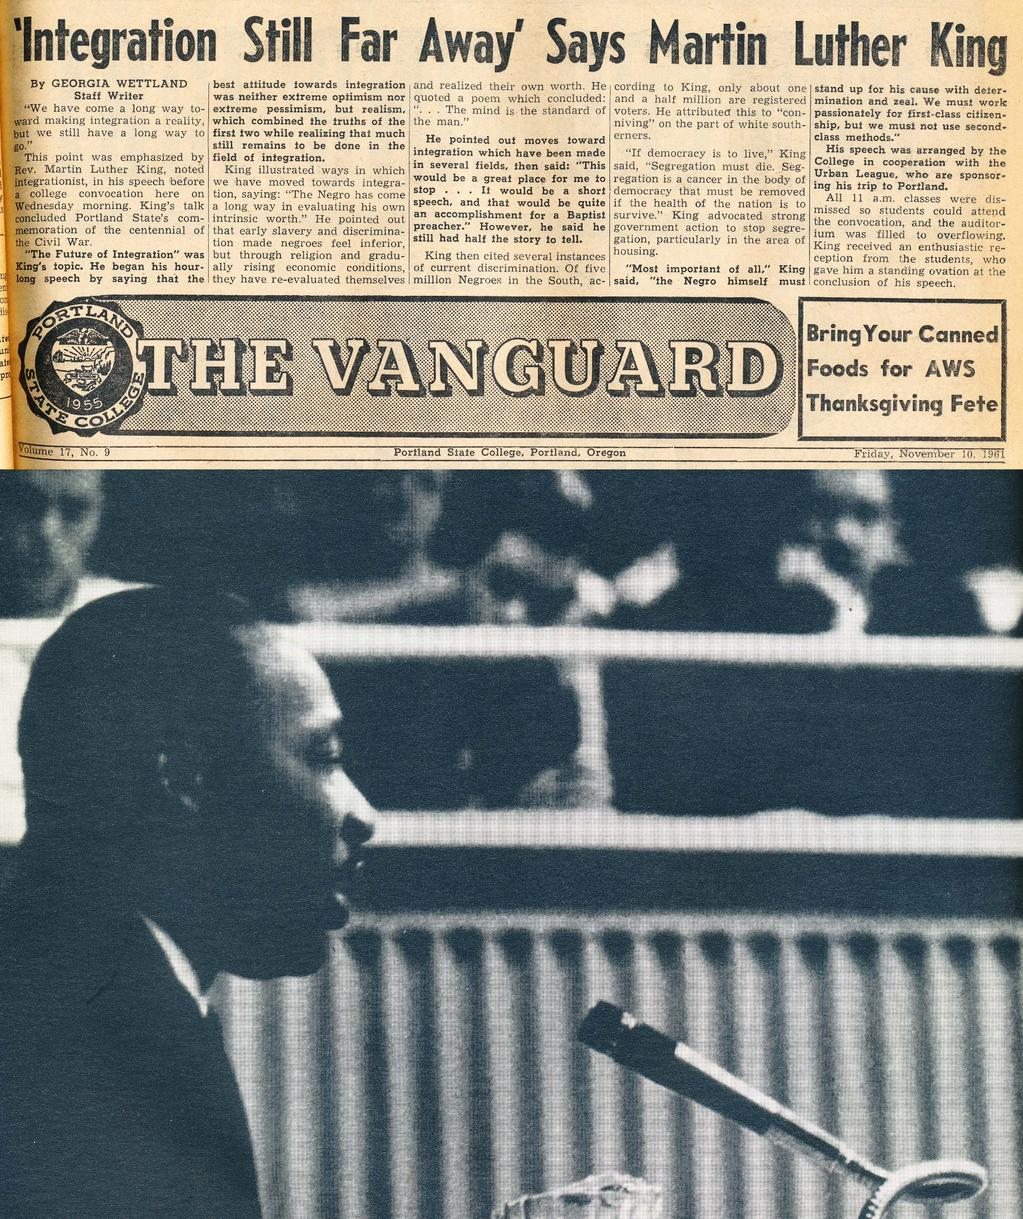 Vanguard story and Viking yearbook photo, via PSU Library University Archives.